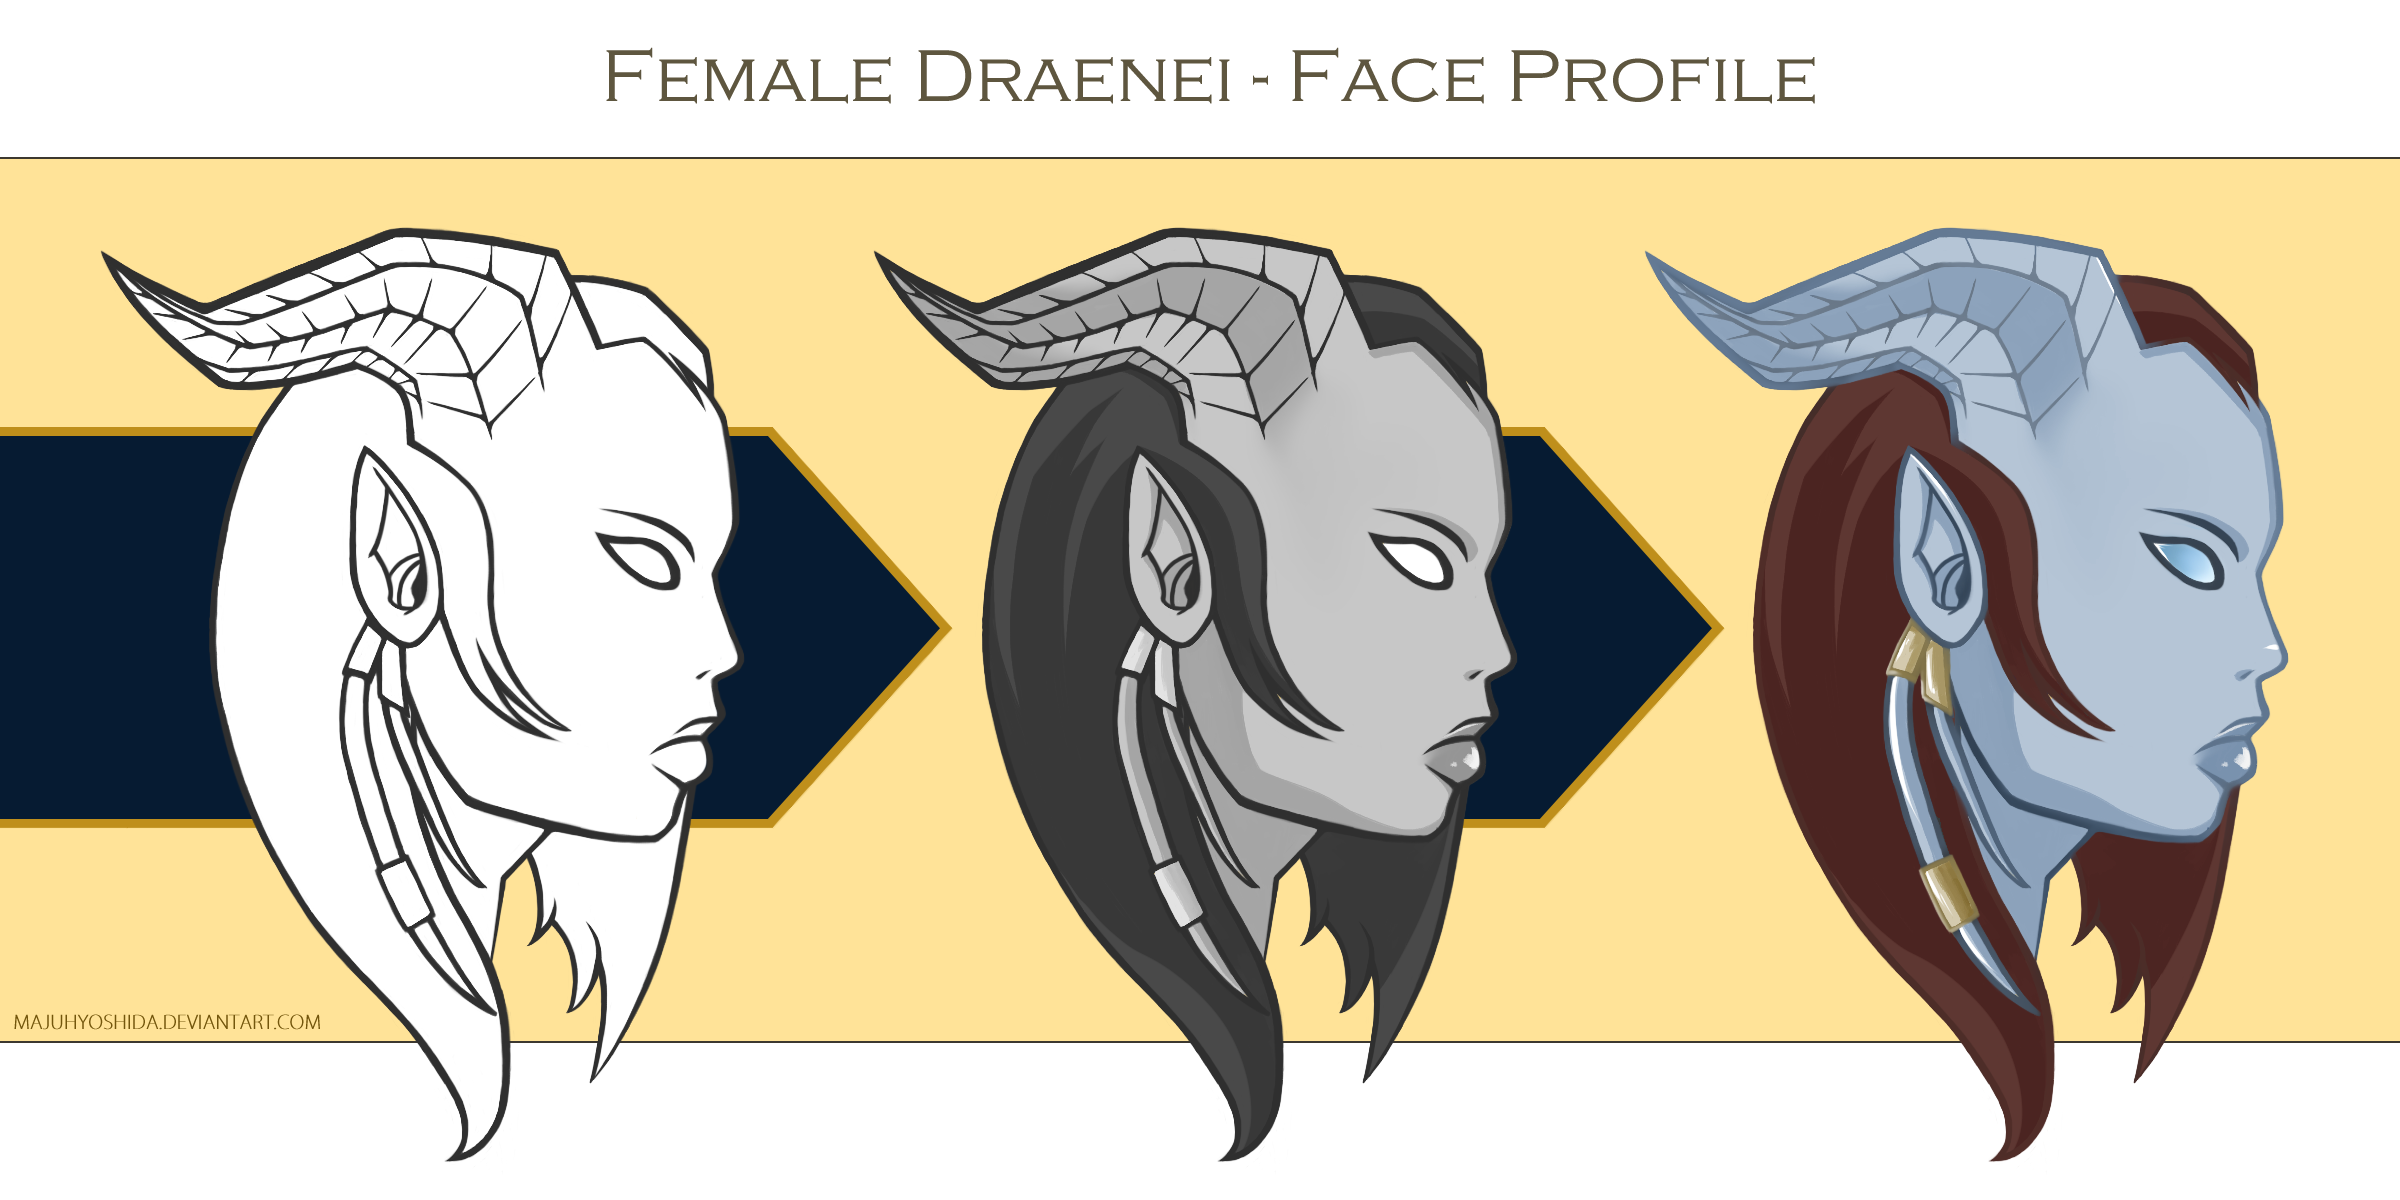 Female Draenei - Face Profile